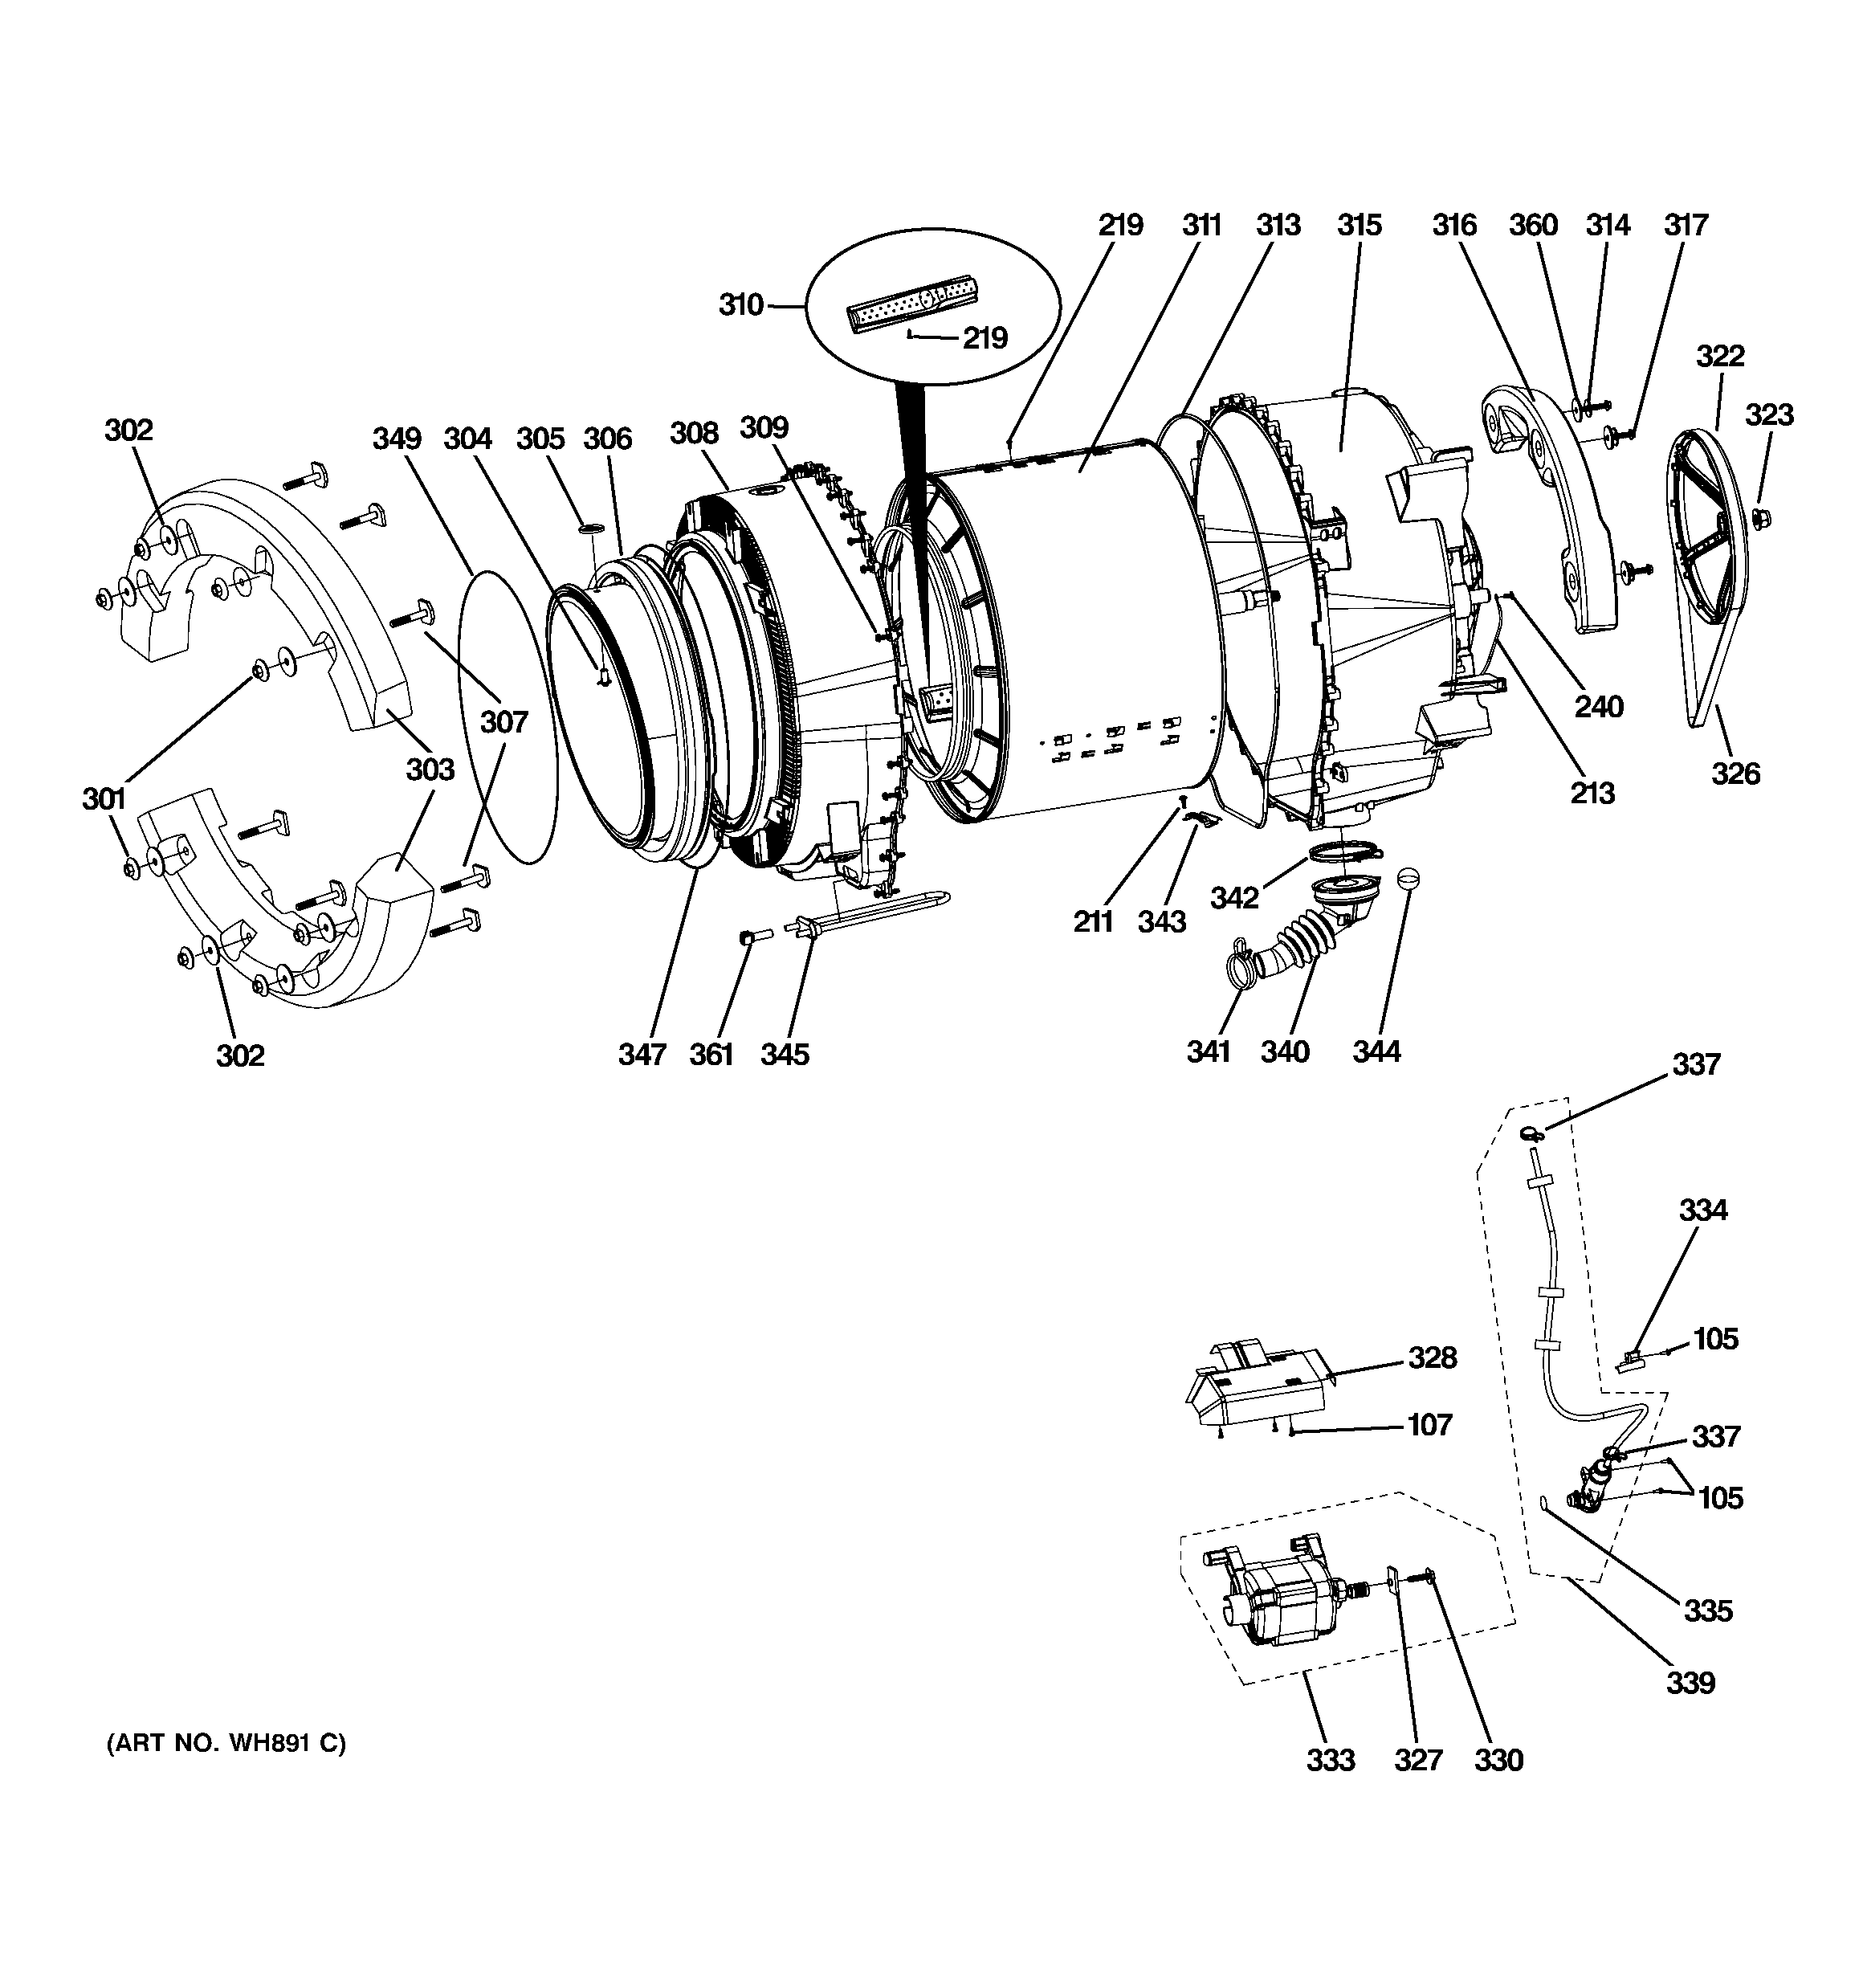 ge front load washer diagram 1969 ford f100 ignition switch wiring parts model wpdh8800j0mg sears partsdirect